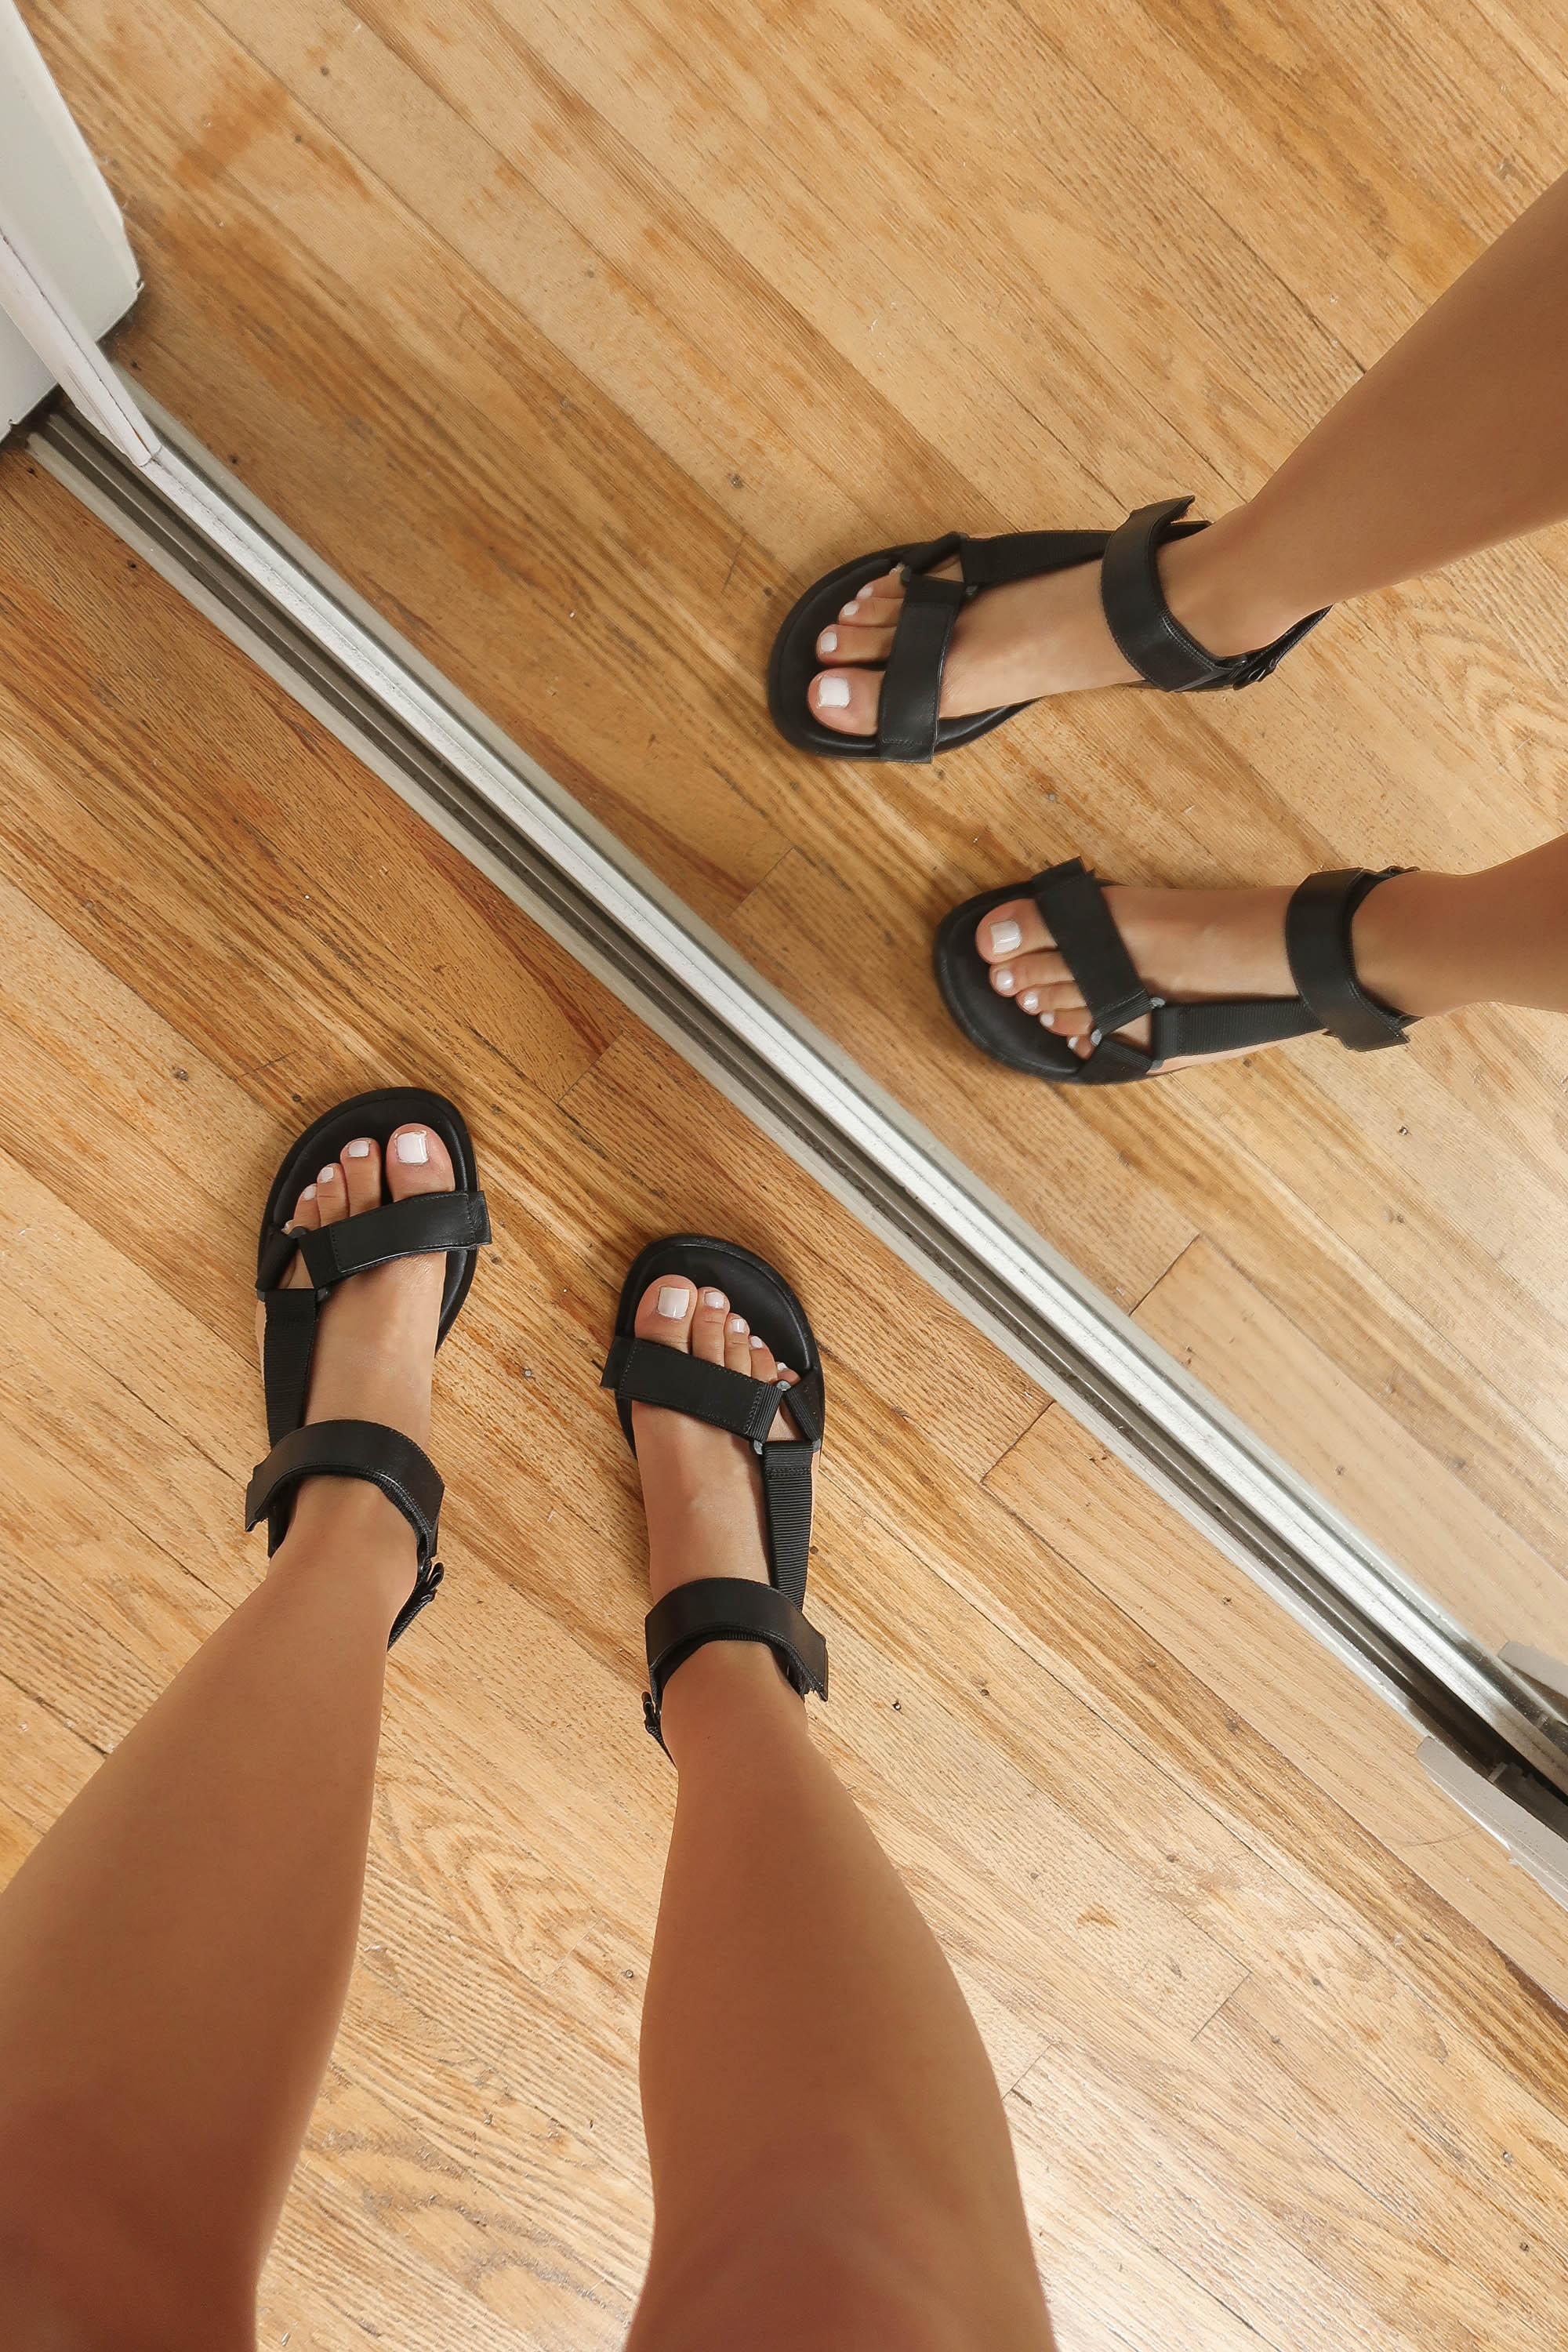 velcro camp sandals - practical AND on trend lol